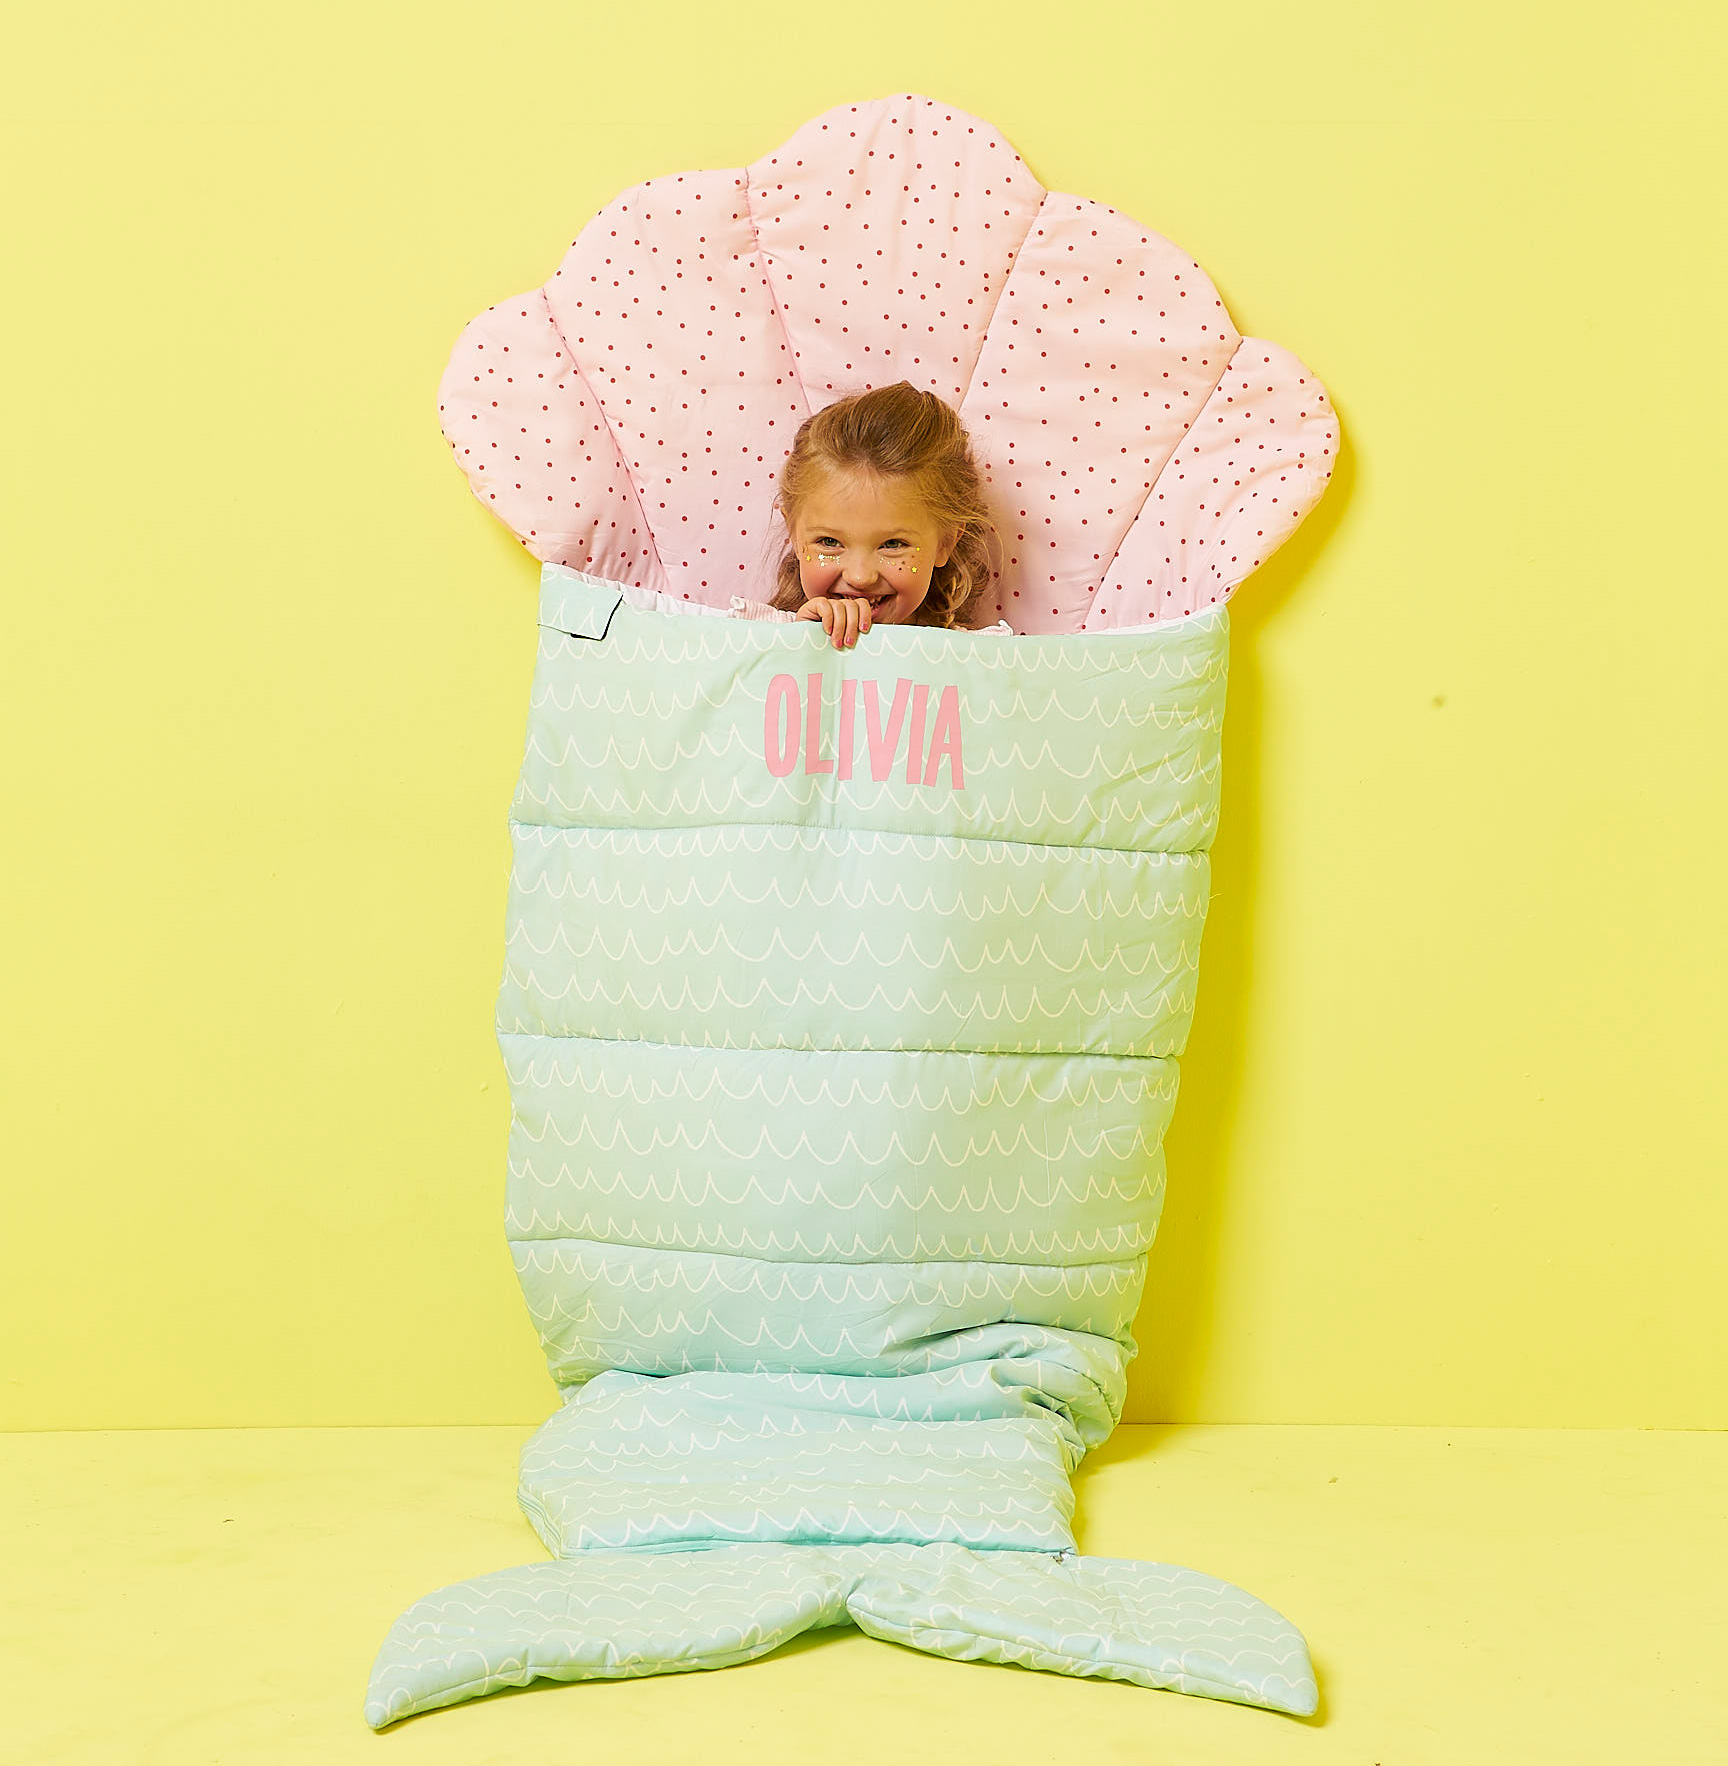 Cotton On Kids Launches Personalization for Holiday